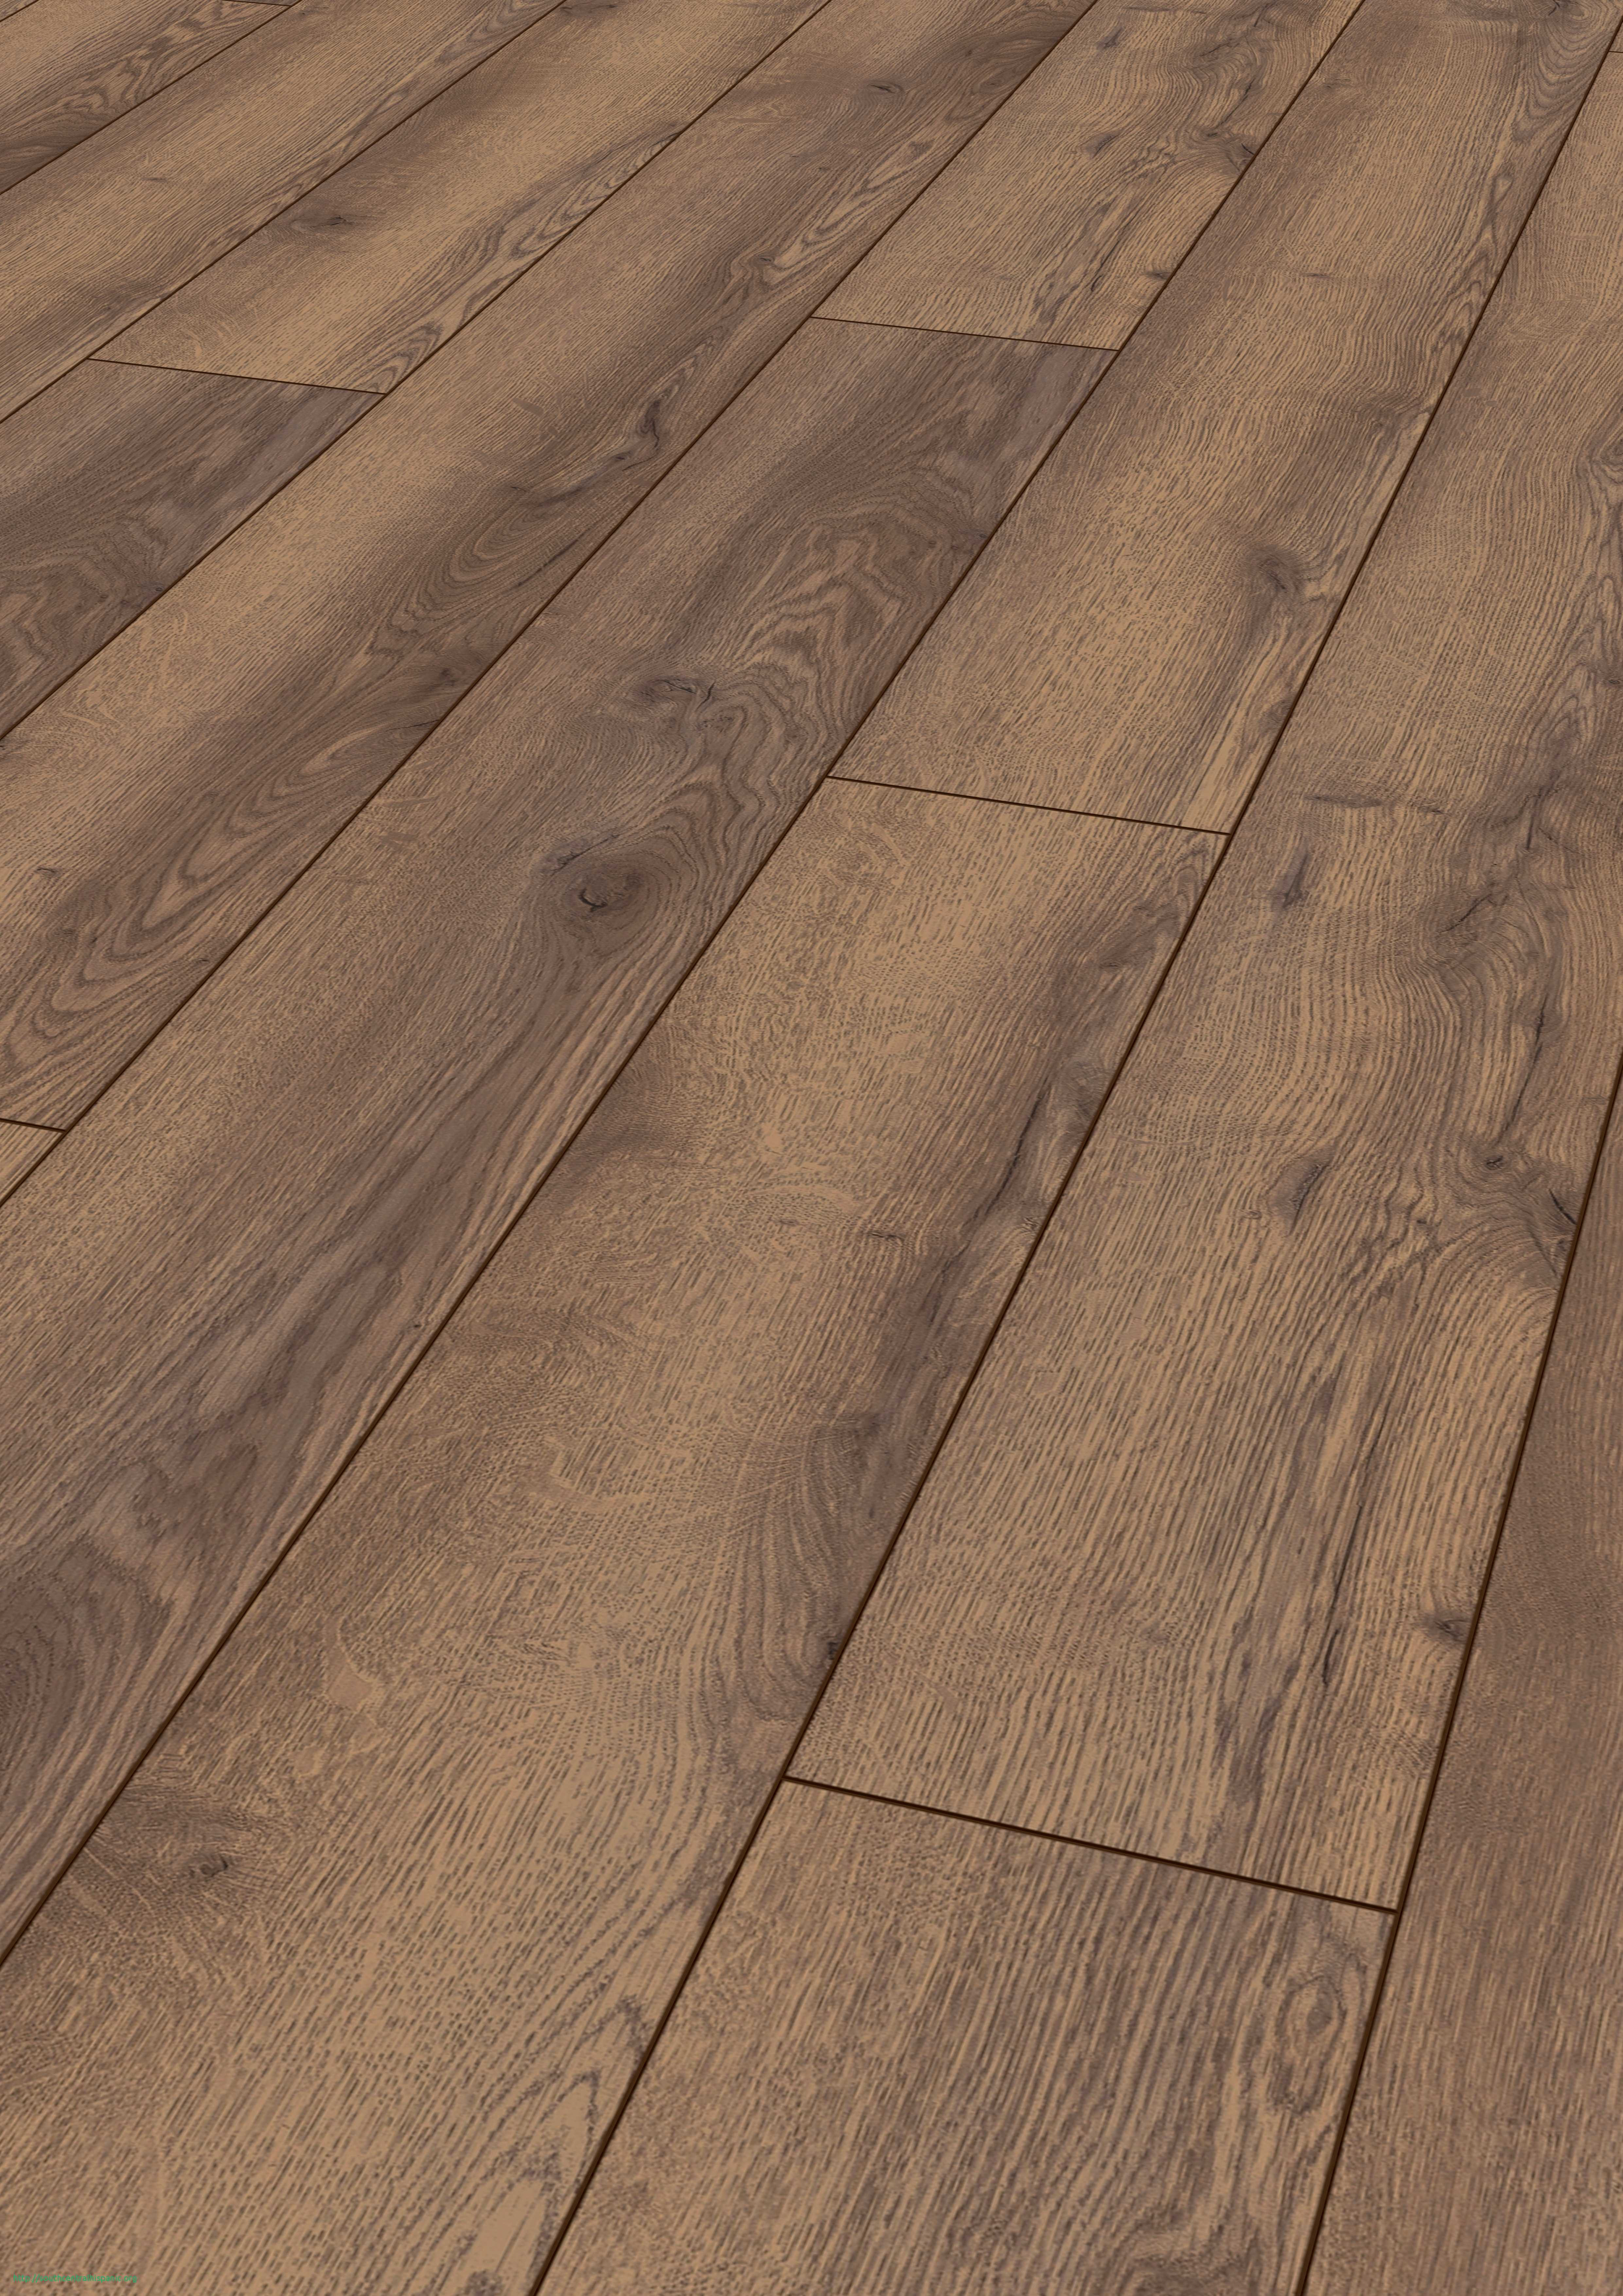 hardwood flooring cost calculator of 21 nouveau laminate flooring layout calculator ideas blog throughout cost flooring ideas laminate flooring layout calculator nouveau mammut laminate flooring in country house plank style